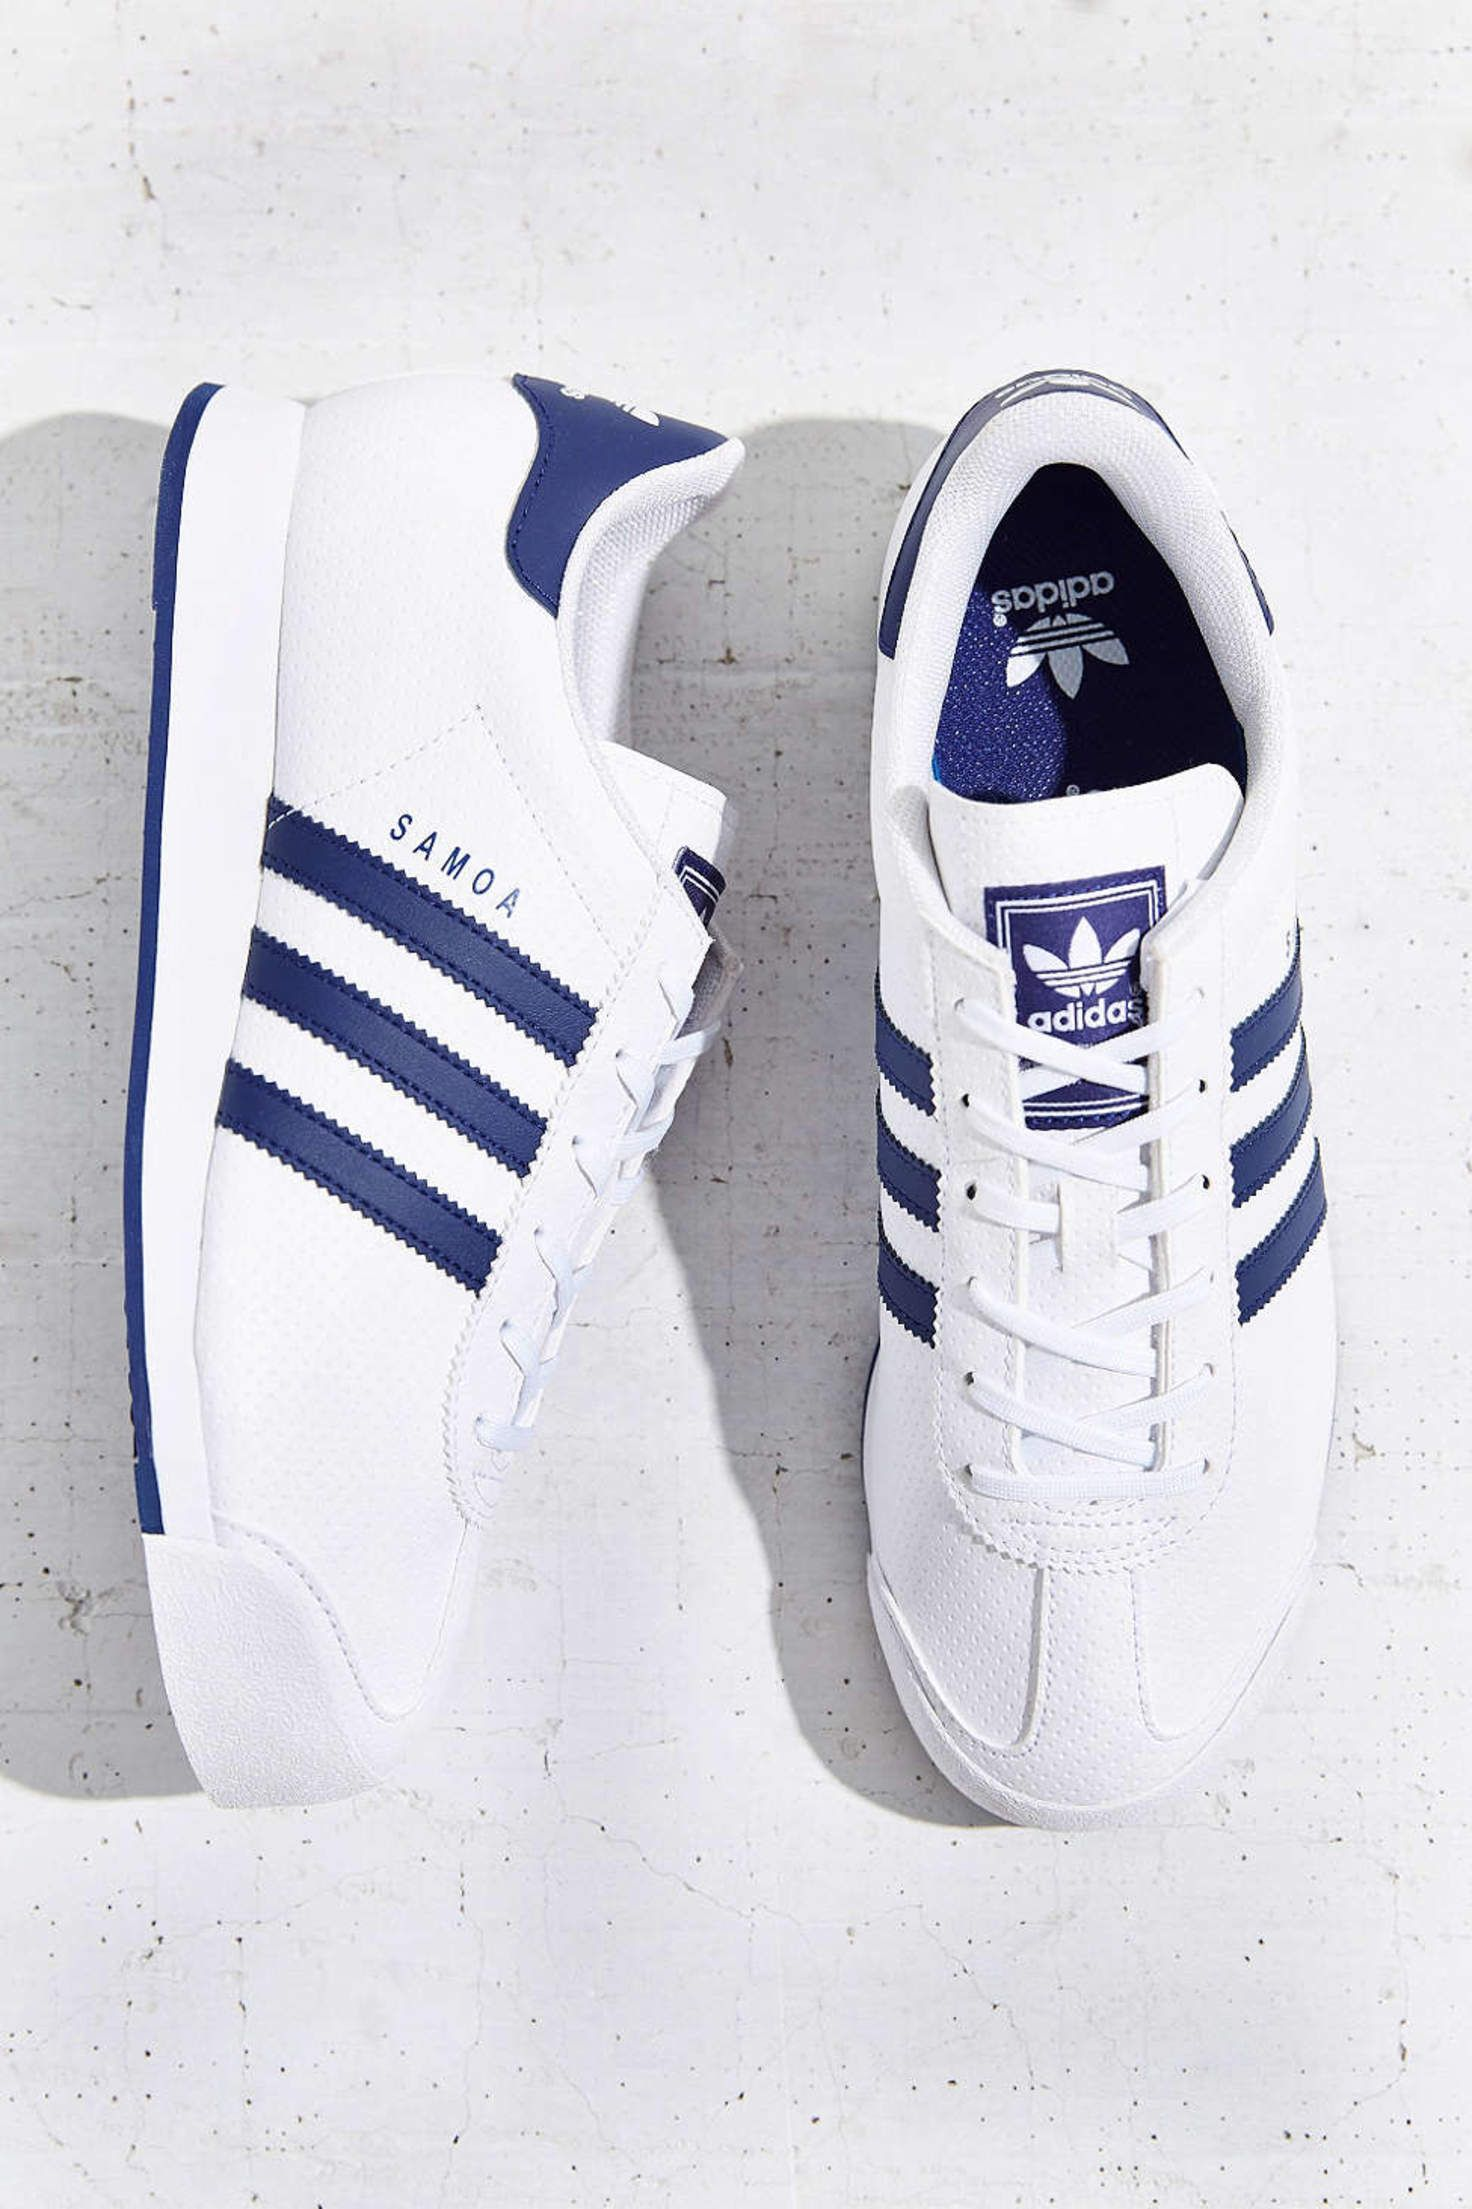 buy popular 2911e 3d422 adidas Originals Samoa Blue Stripe Sneaker - Urban Outfitters